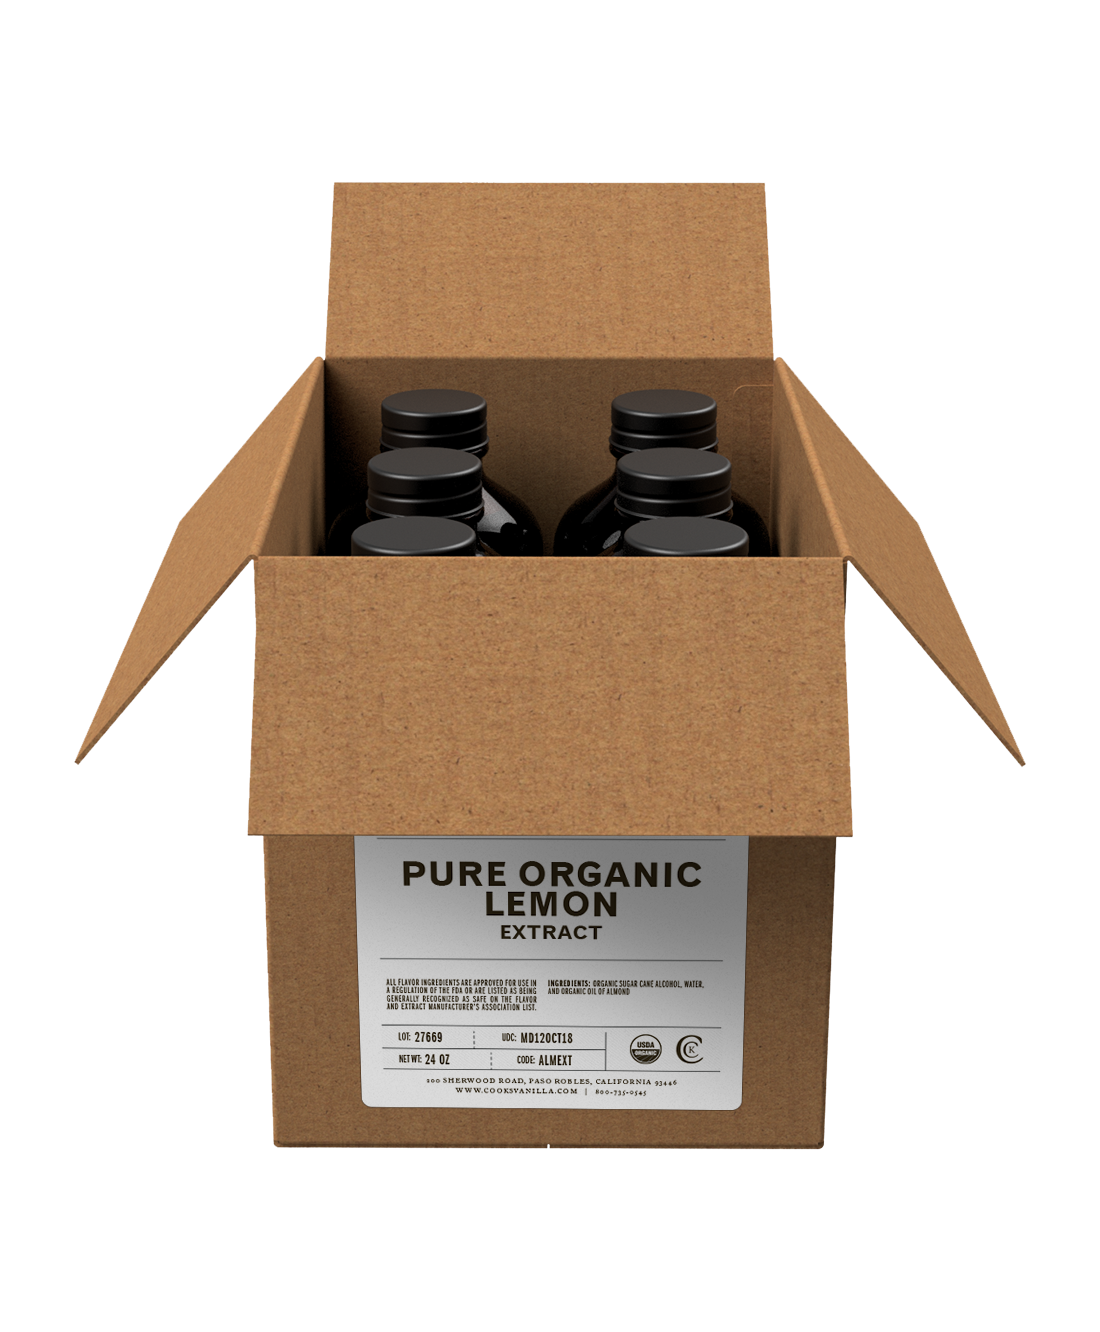 Flavoring | Organic Lemon Extract (Pure) | Packs and Cases